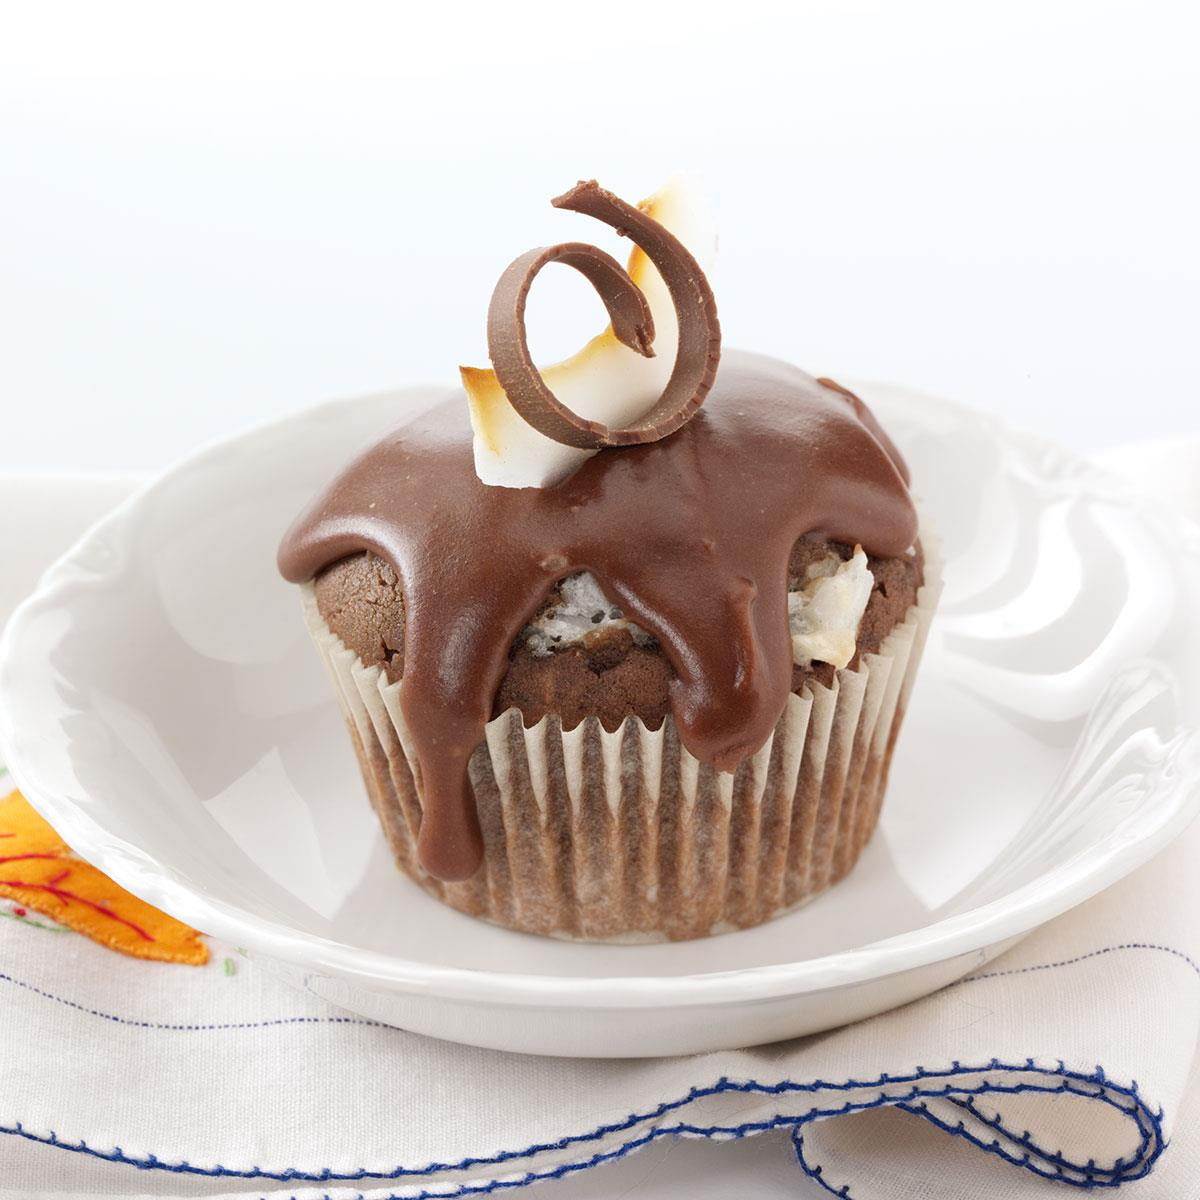 Coconut-Filled Chocolate Cupcakes image